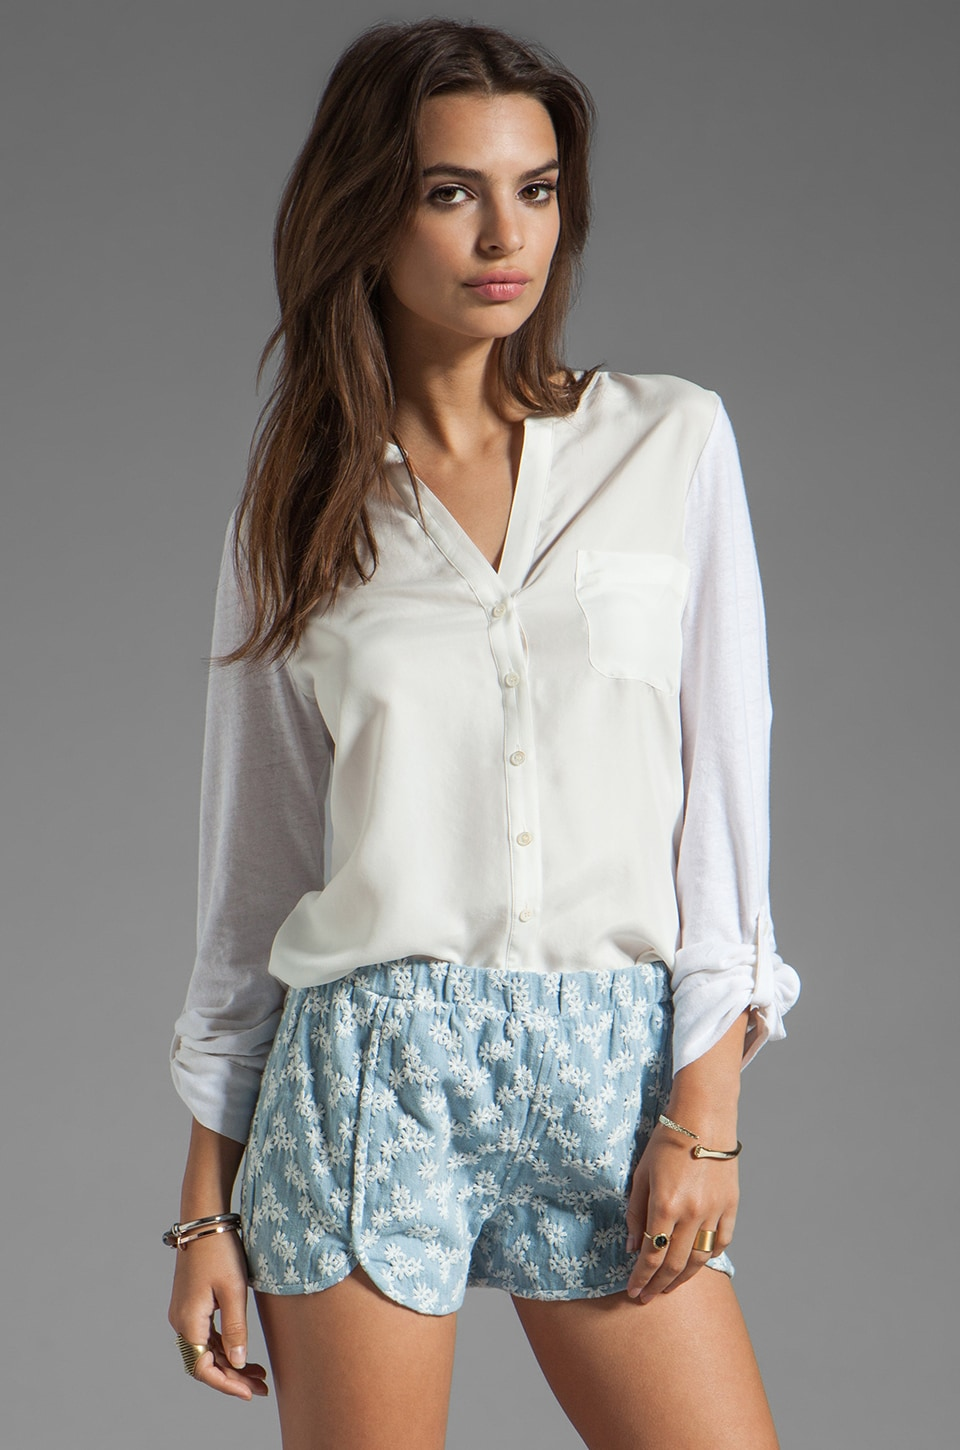 Soft Joie Evaine Button Down Top in Porcelain